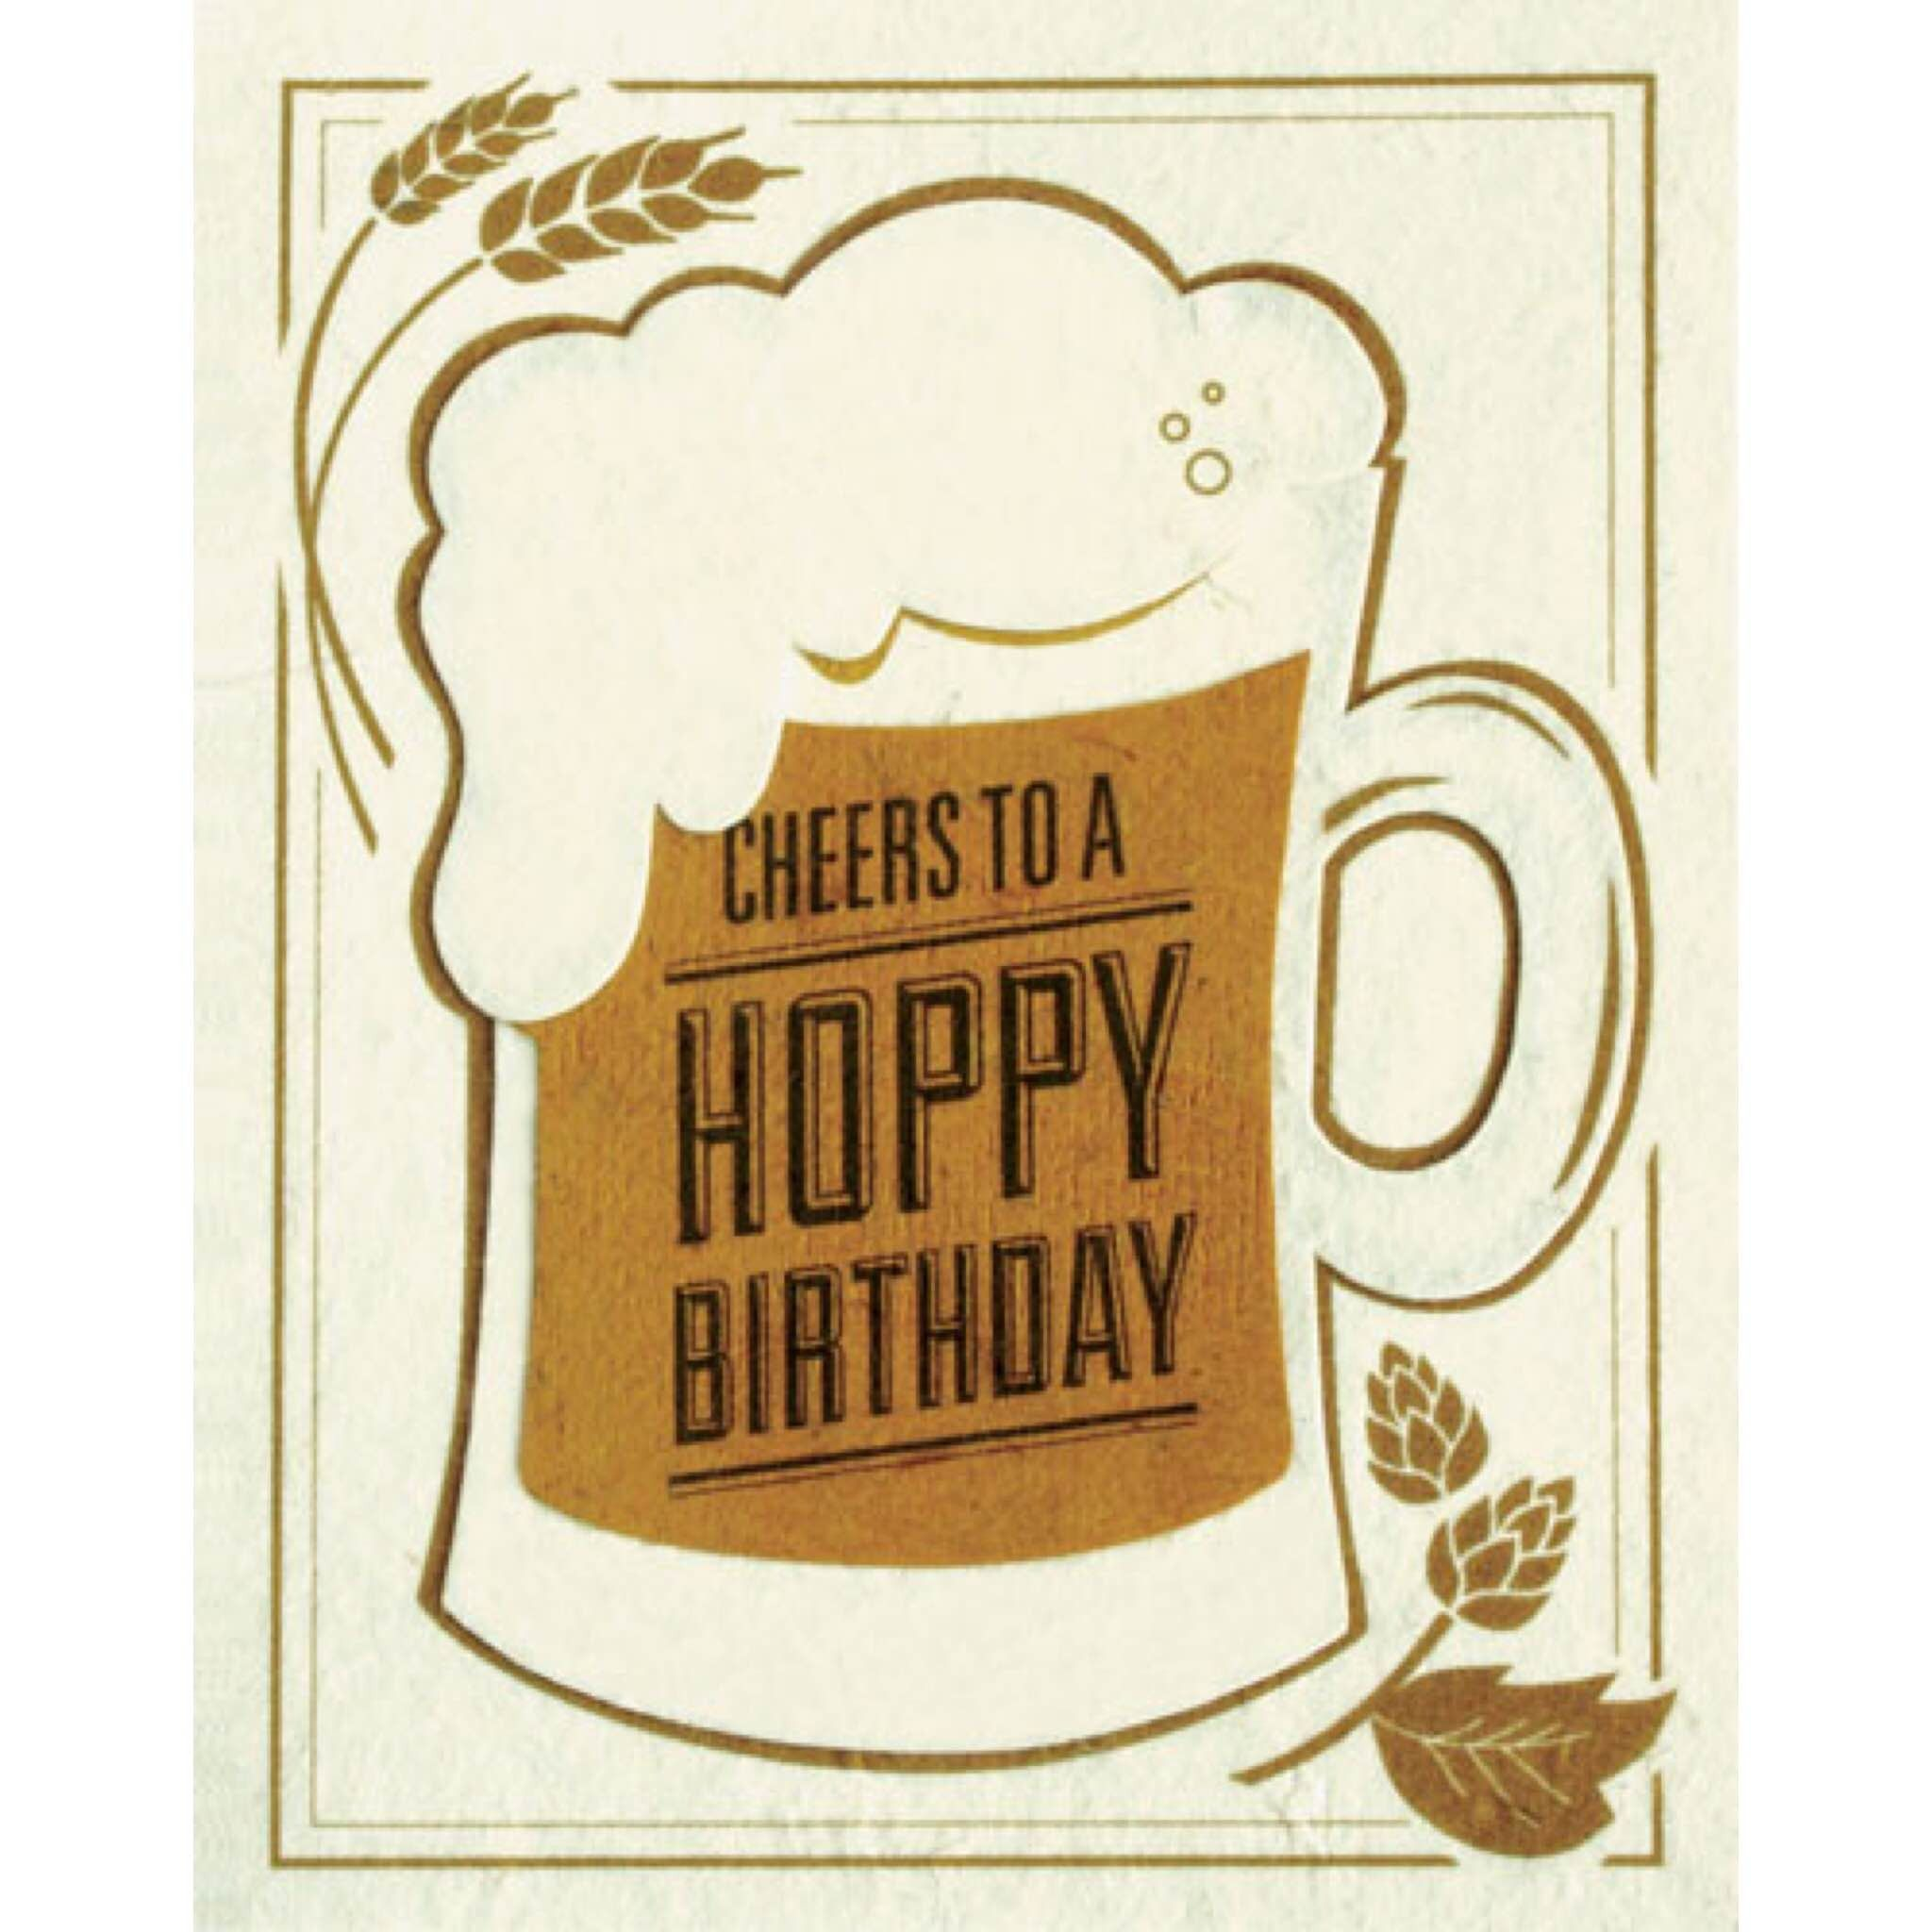 Beautiful Happy Birthday Happy Birthday Cheers Cake Happy Birthday Cheers Ny Cheers To A Hoppy Birthday Card Cheers To A Hoppy Birthday Card Cards